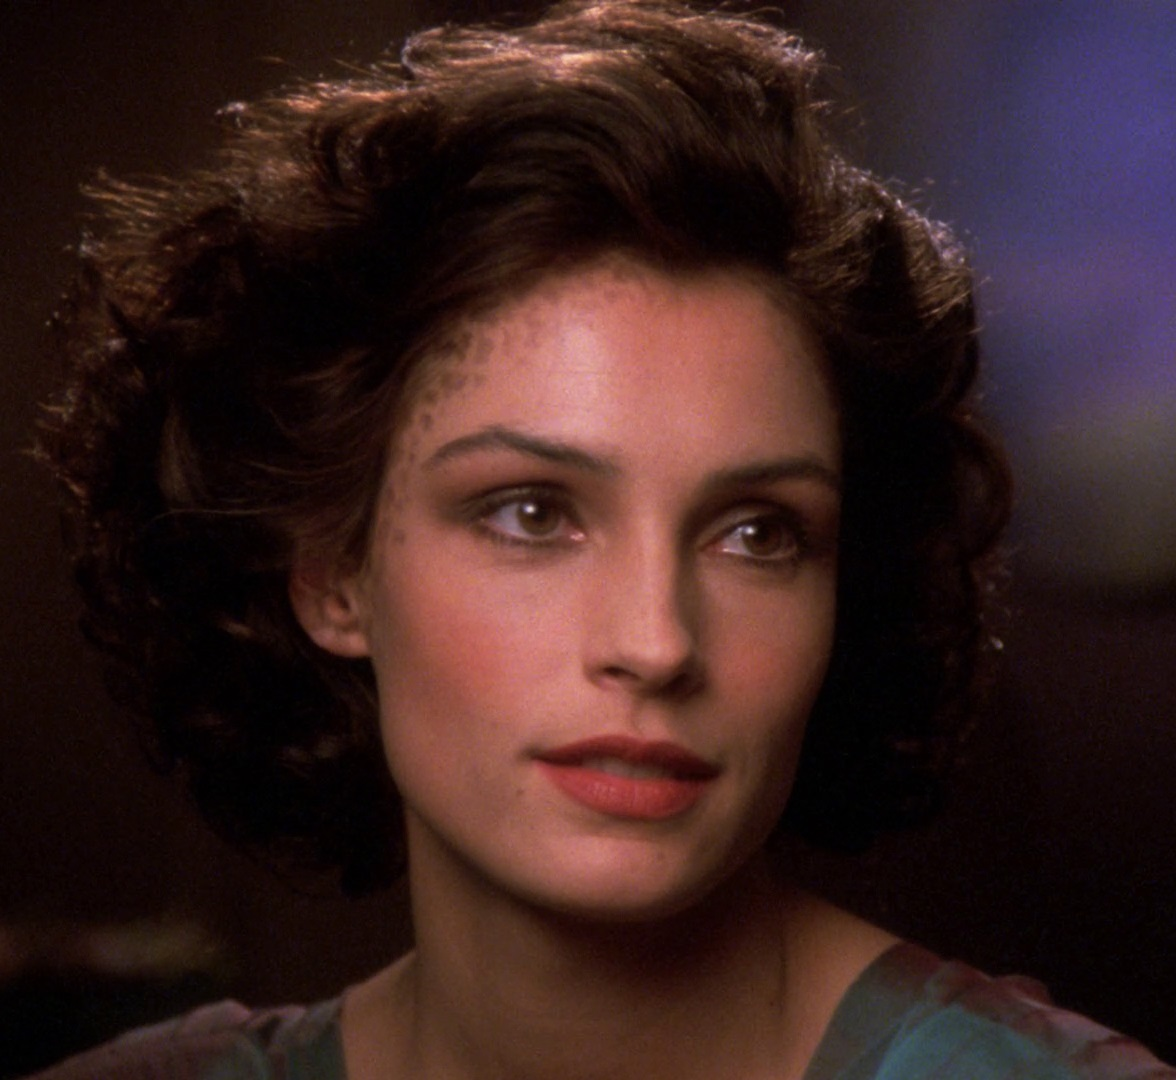 an introduction to gender roles in star trek next generation Other characters noted as being married include leonard mccoy (divorced before both the original series and the events of star trek, he remarries during the course of the original series), beverly crusher (widowed before the beginning of star trek: the next generation), katherine pulaski, benjamin sisko, tuvok, and.